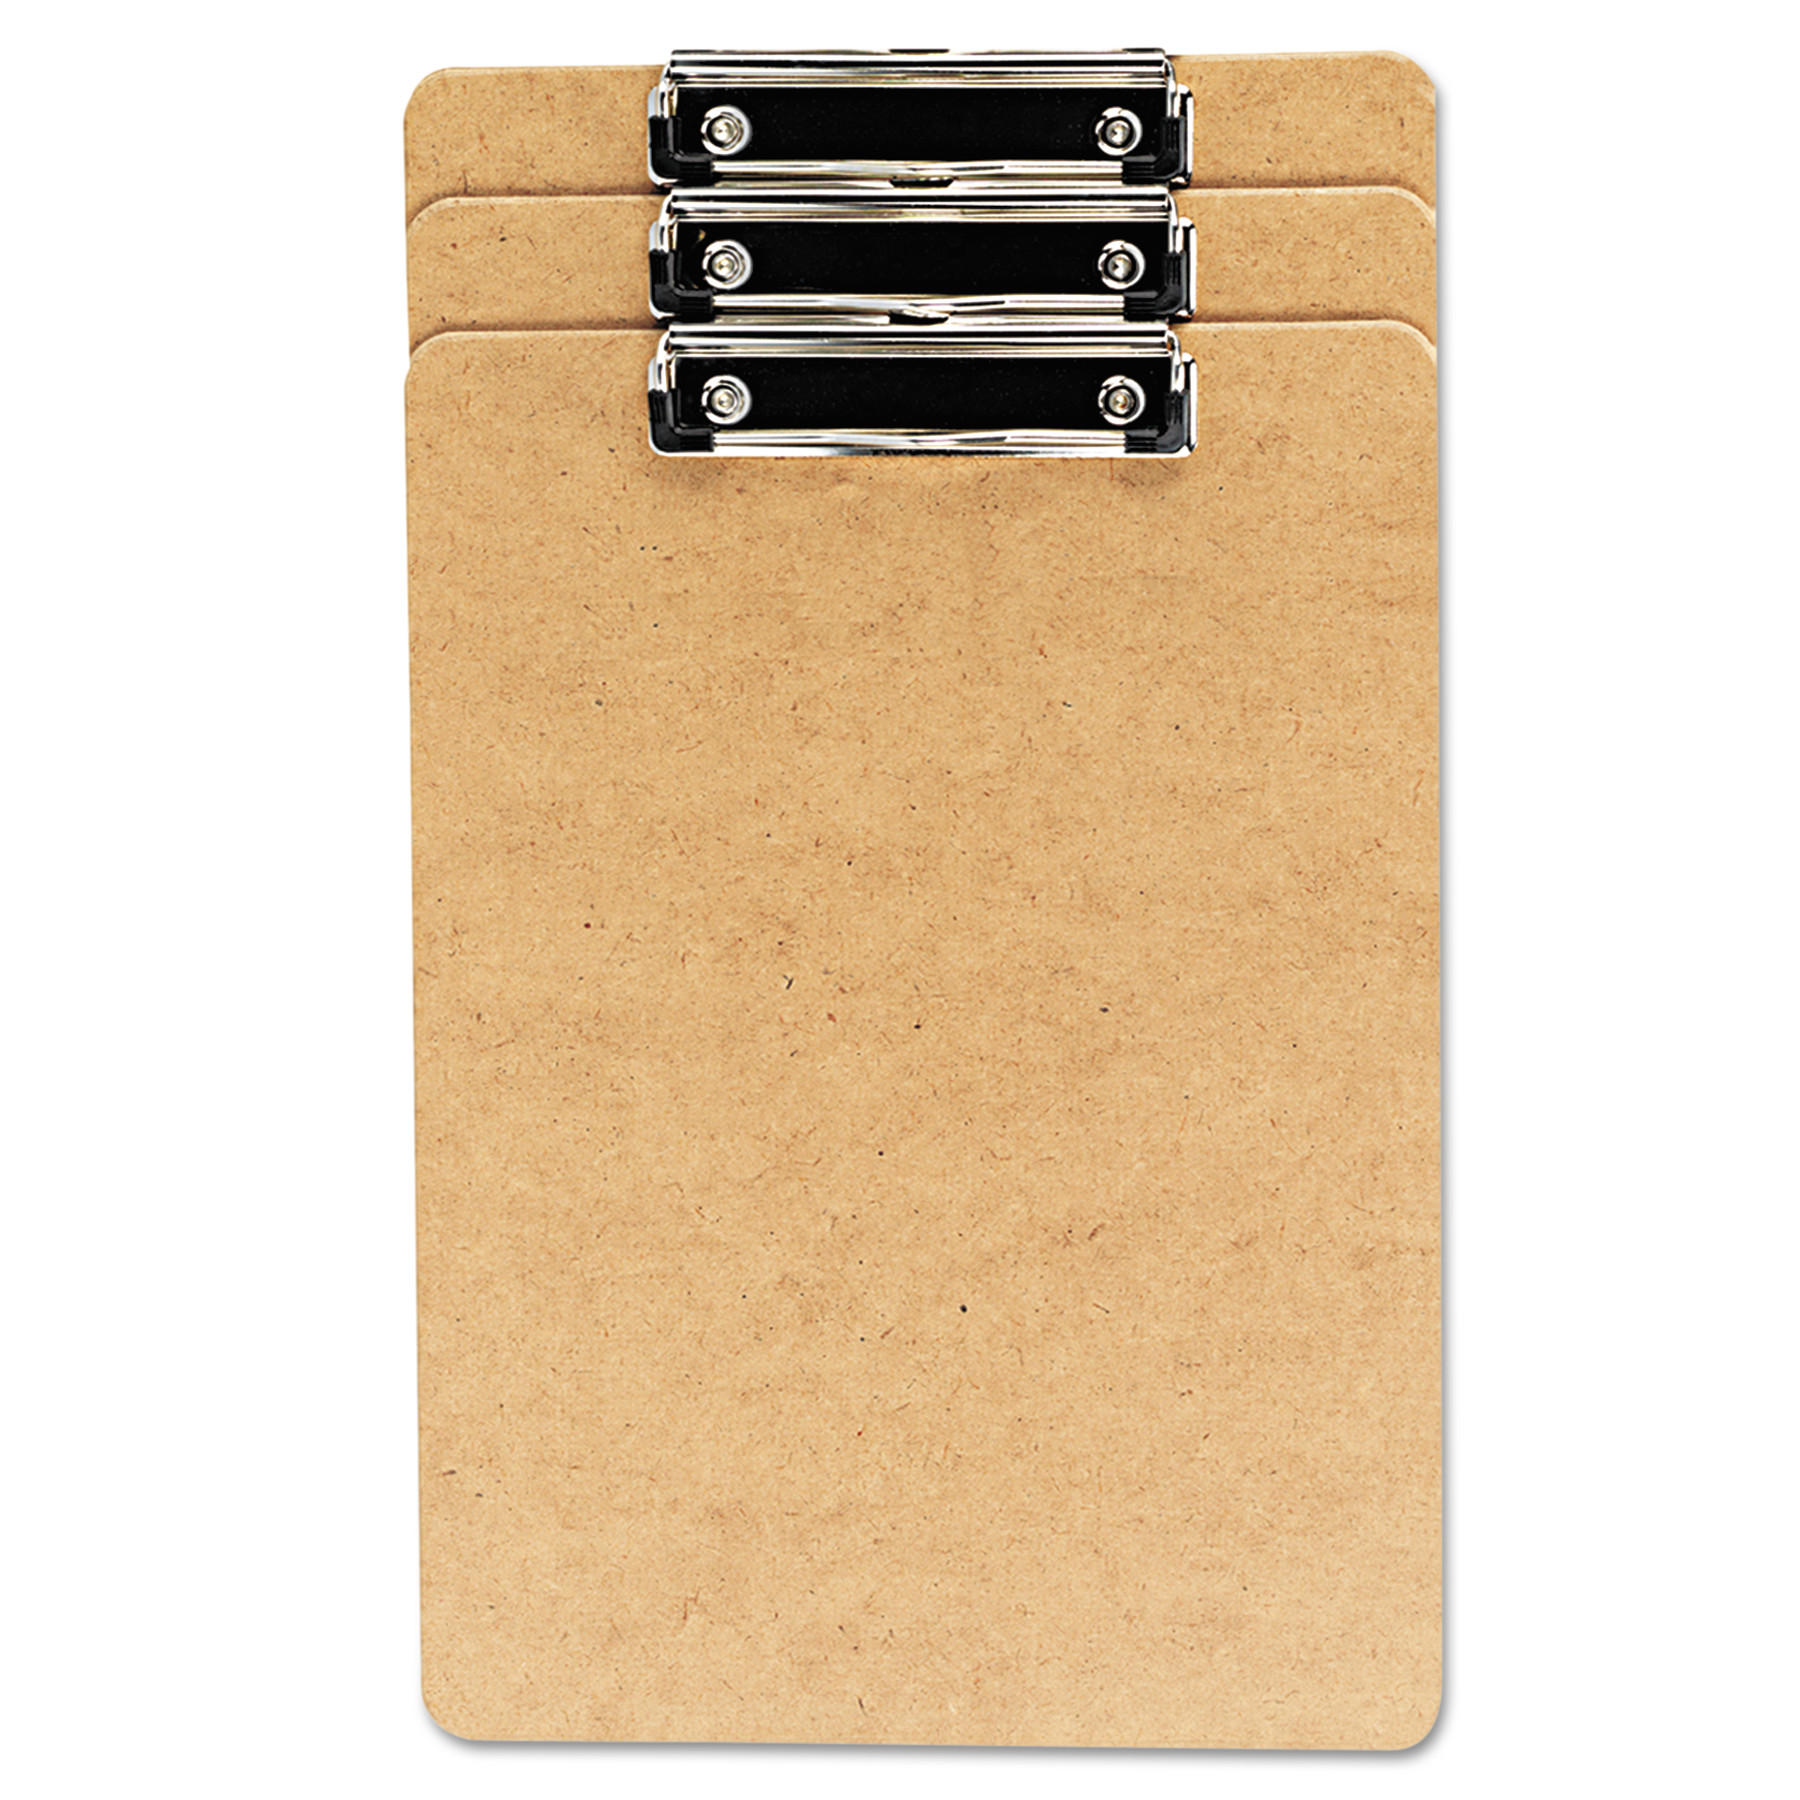 "Universal Hardboard Clipboard, 1/2"" Capacity, Holds 8 1/2w x 14h, Brown, 3/Pack -UNV05563"